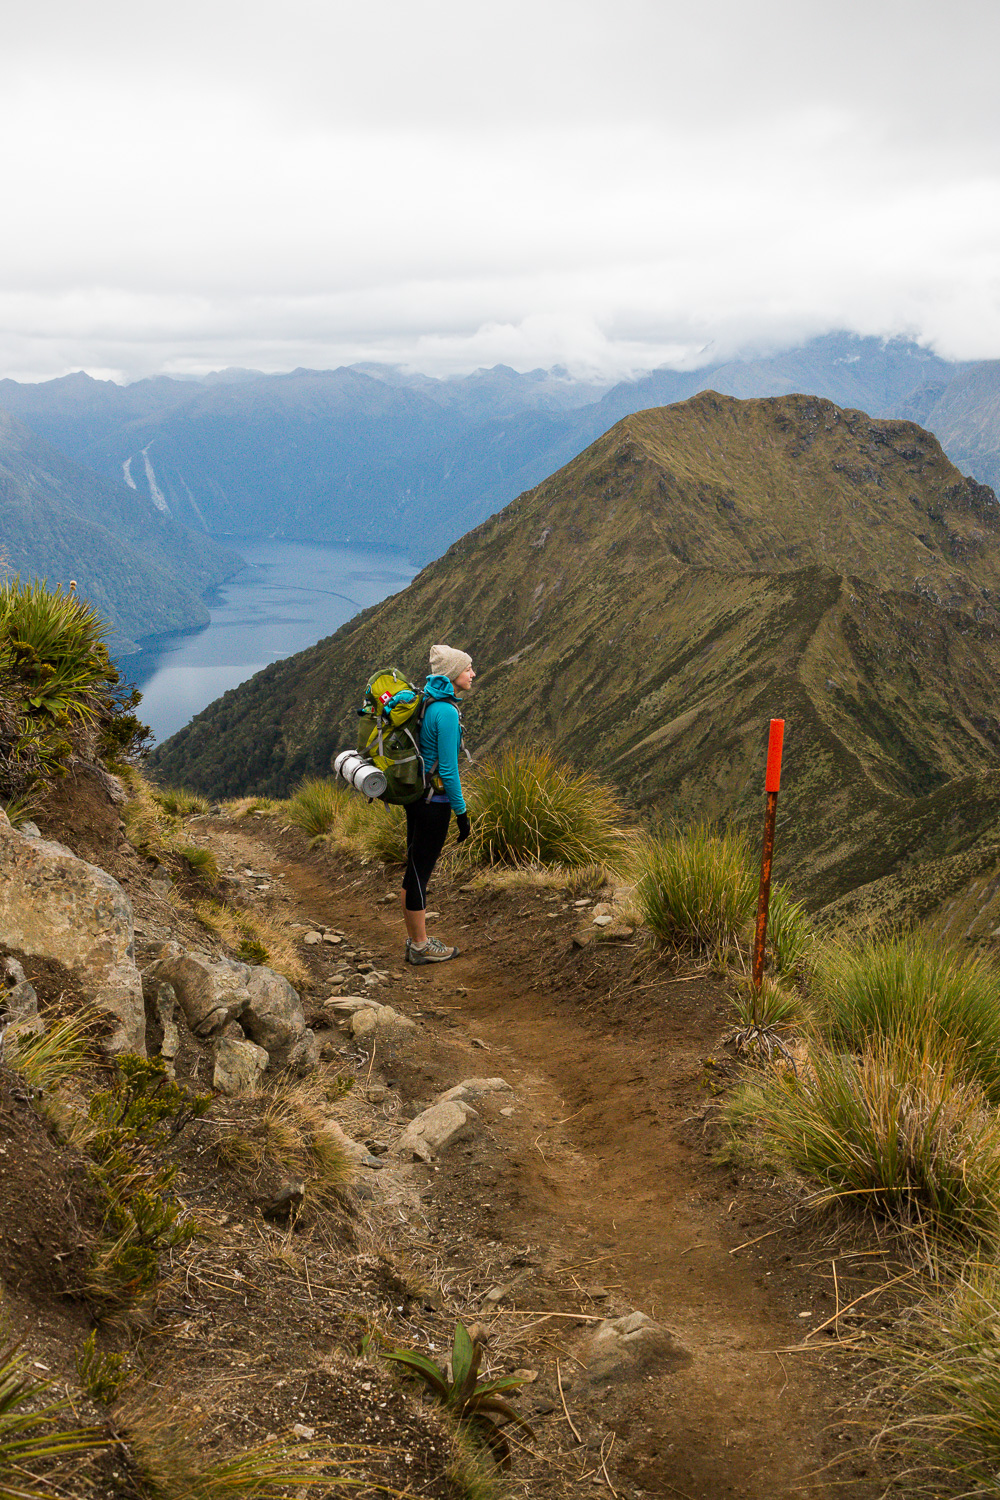 180208_new-zealand-road-trip-lcarvitto_58.jpg